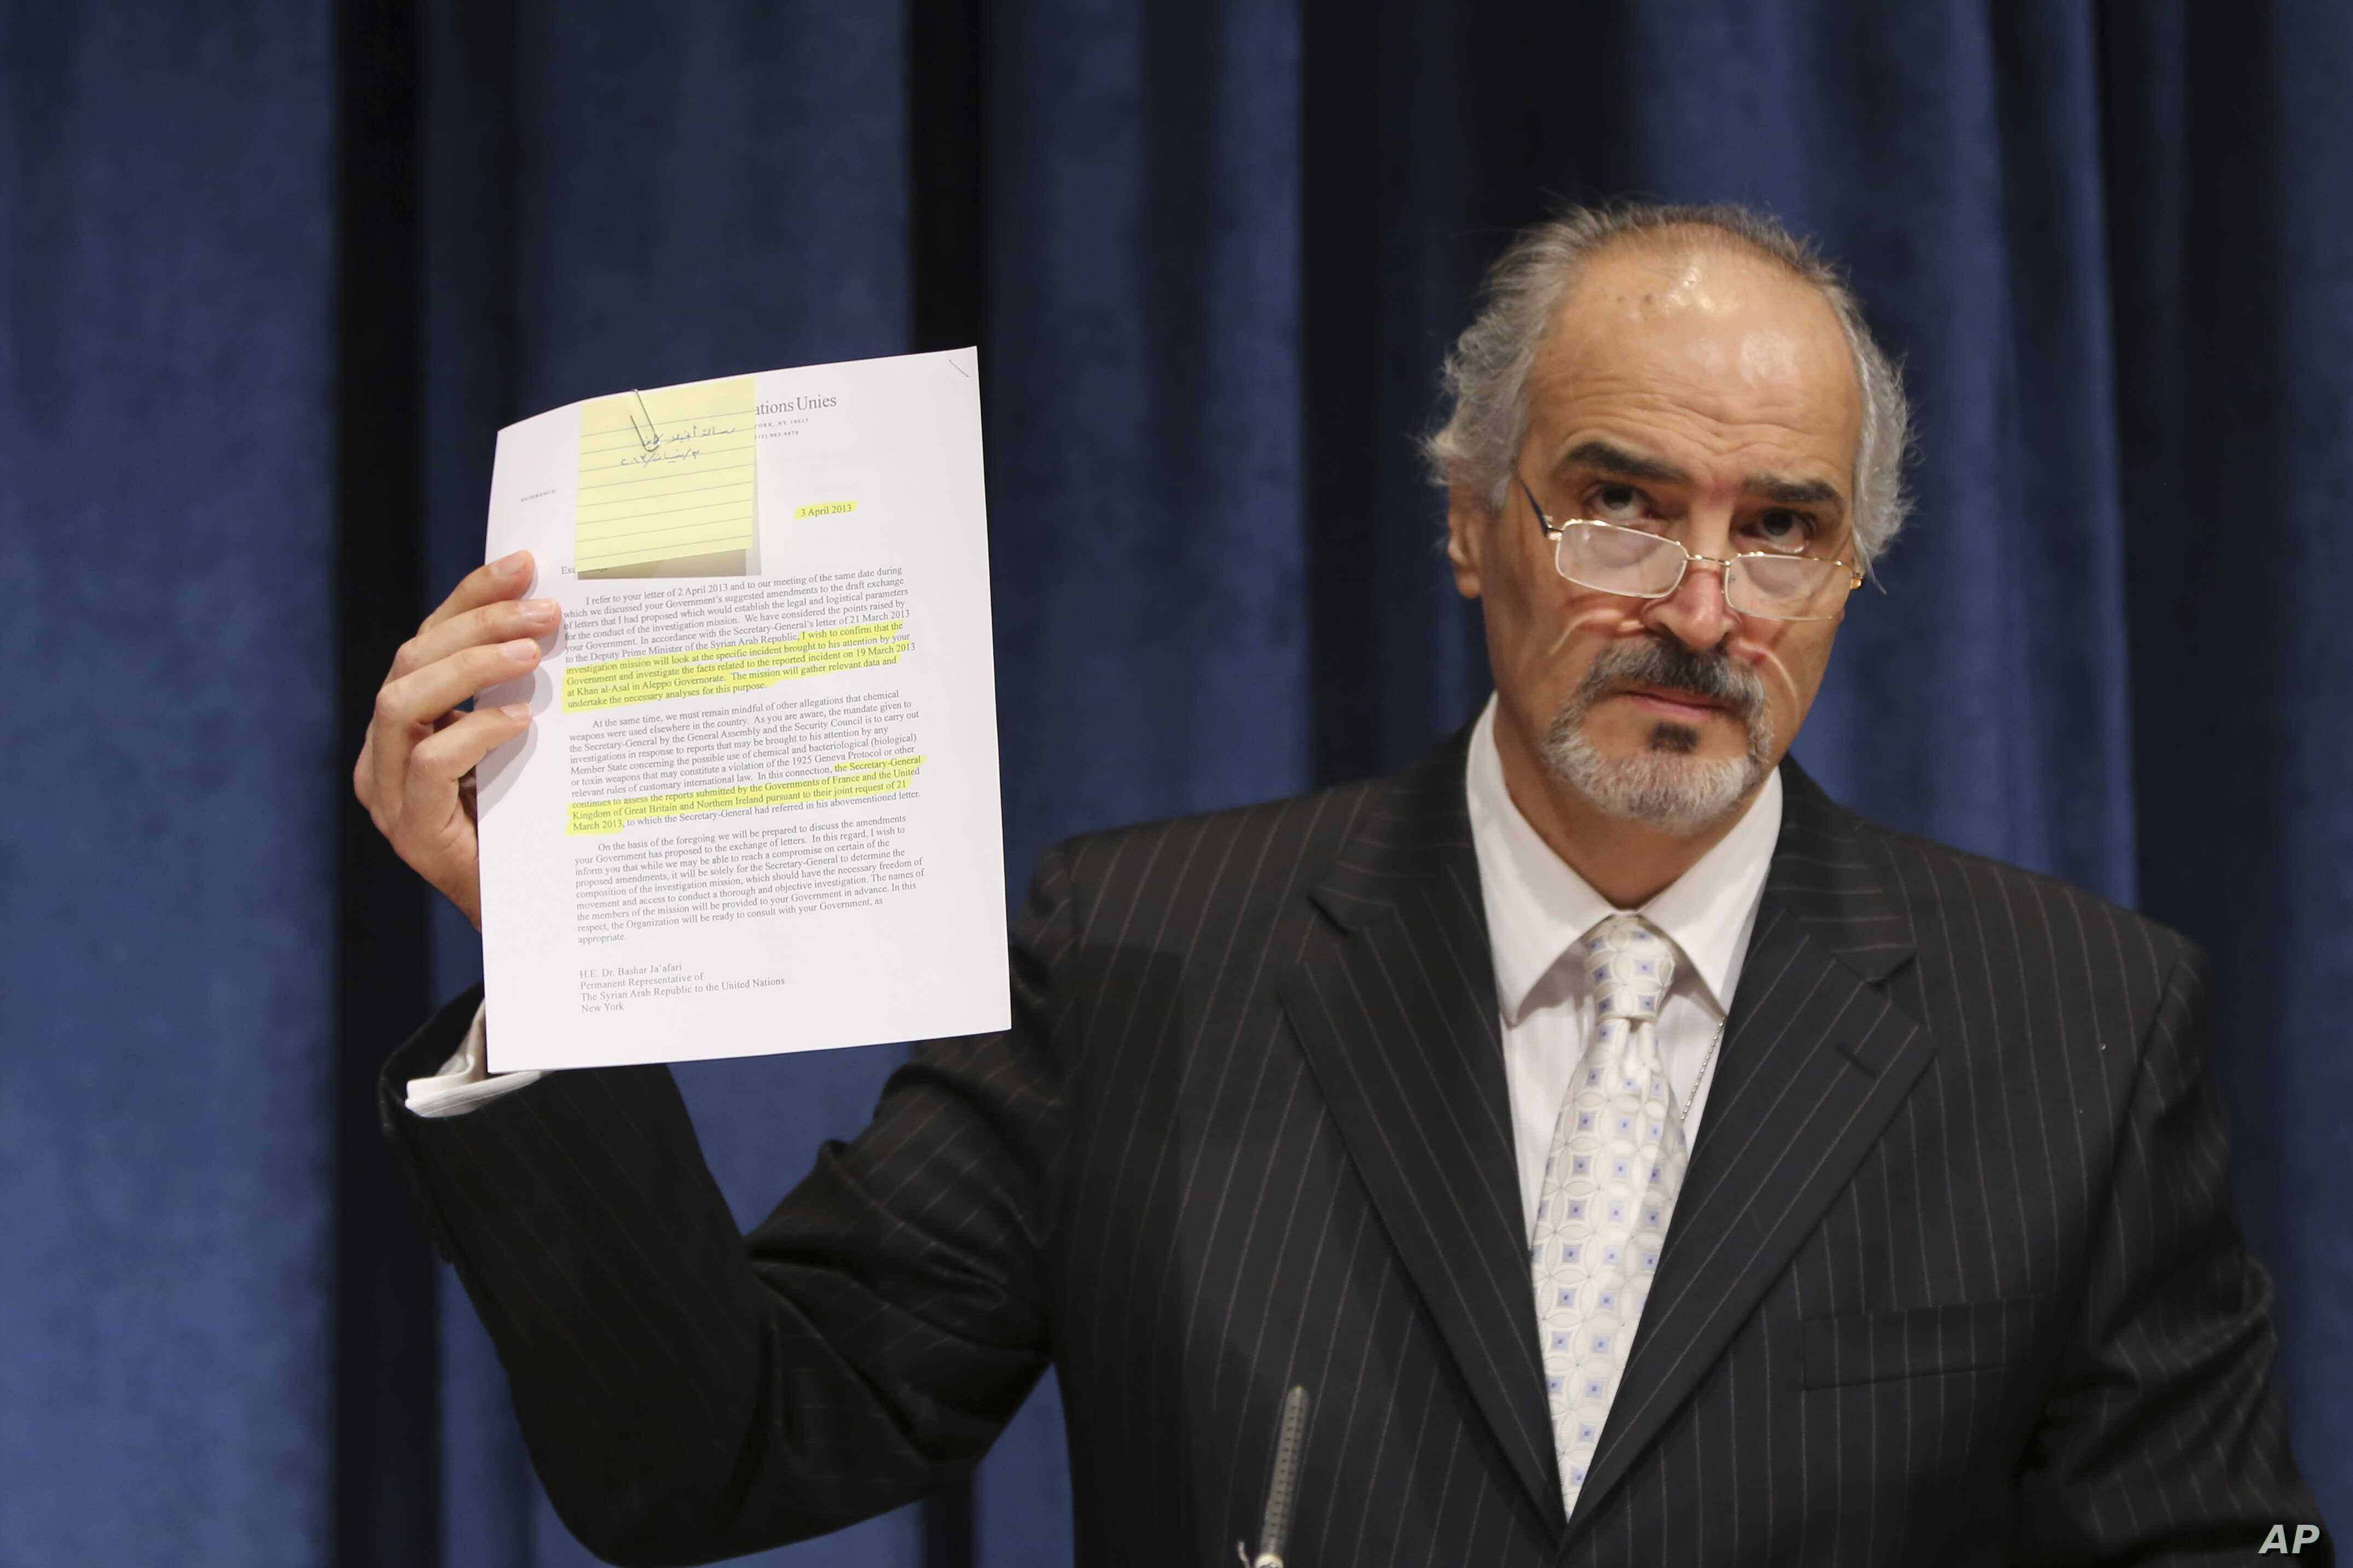 Bashar Ja'afari, Permanent Representative of the Syrian Arab Republic to the United Nations, gestures as he speaks during a news conference, Apr. 30, 2013 at U.N. headquarters.